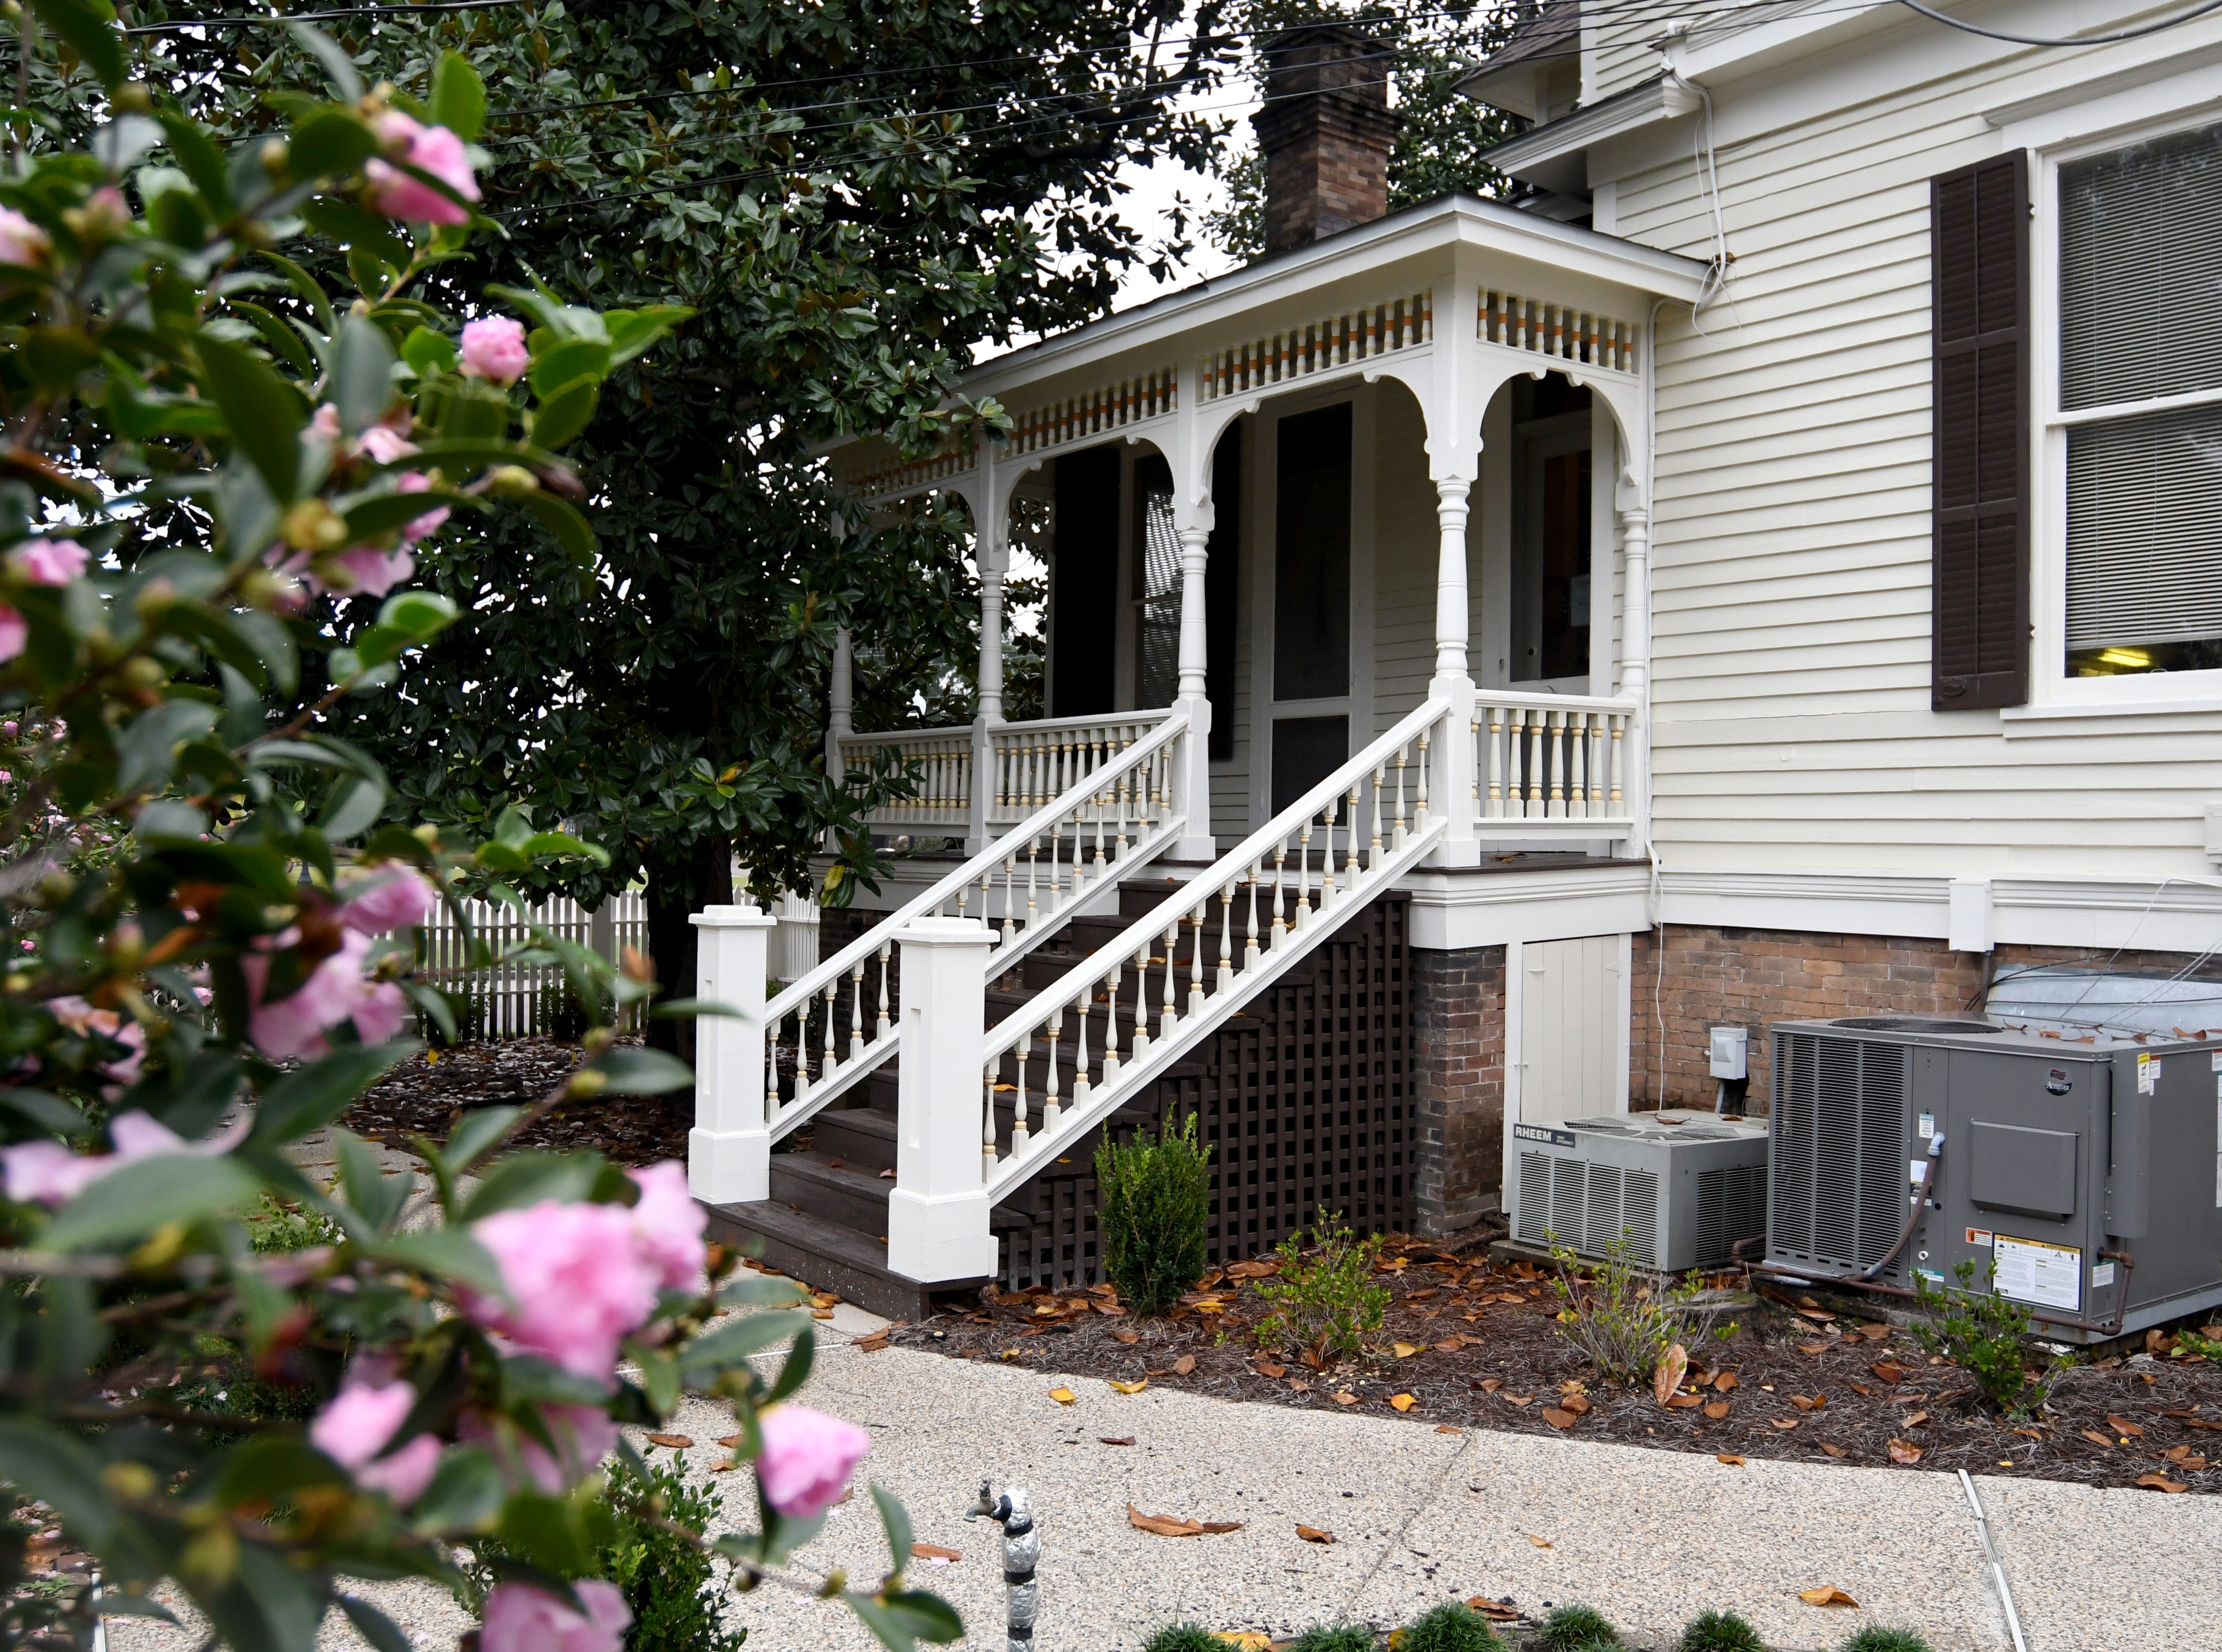 The Deakle Law Firm in Hattiesburg is located in an historic house originally home to the McLeod family.